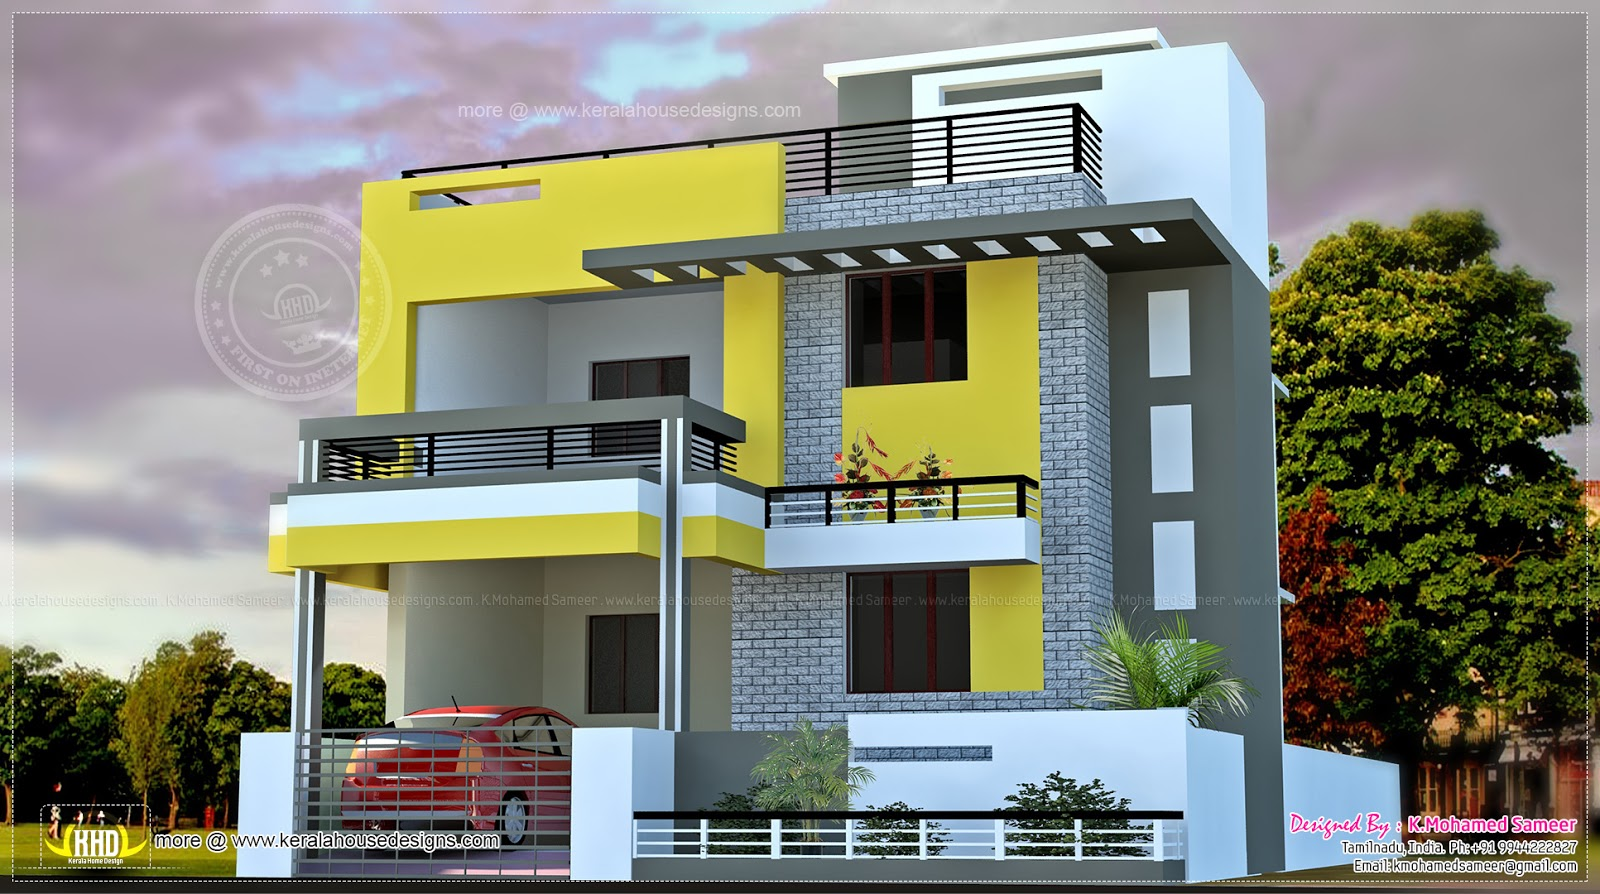 June 2013 kerala home design and floor plans House designs indian style pictures